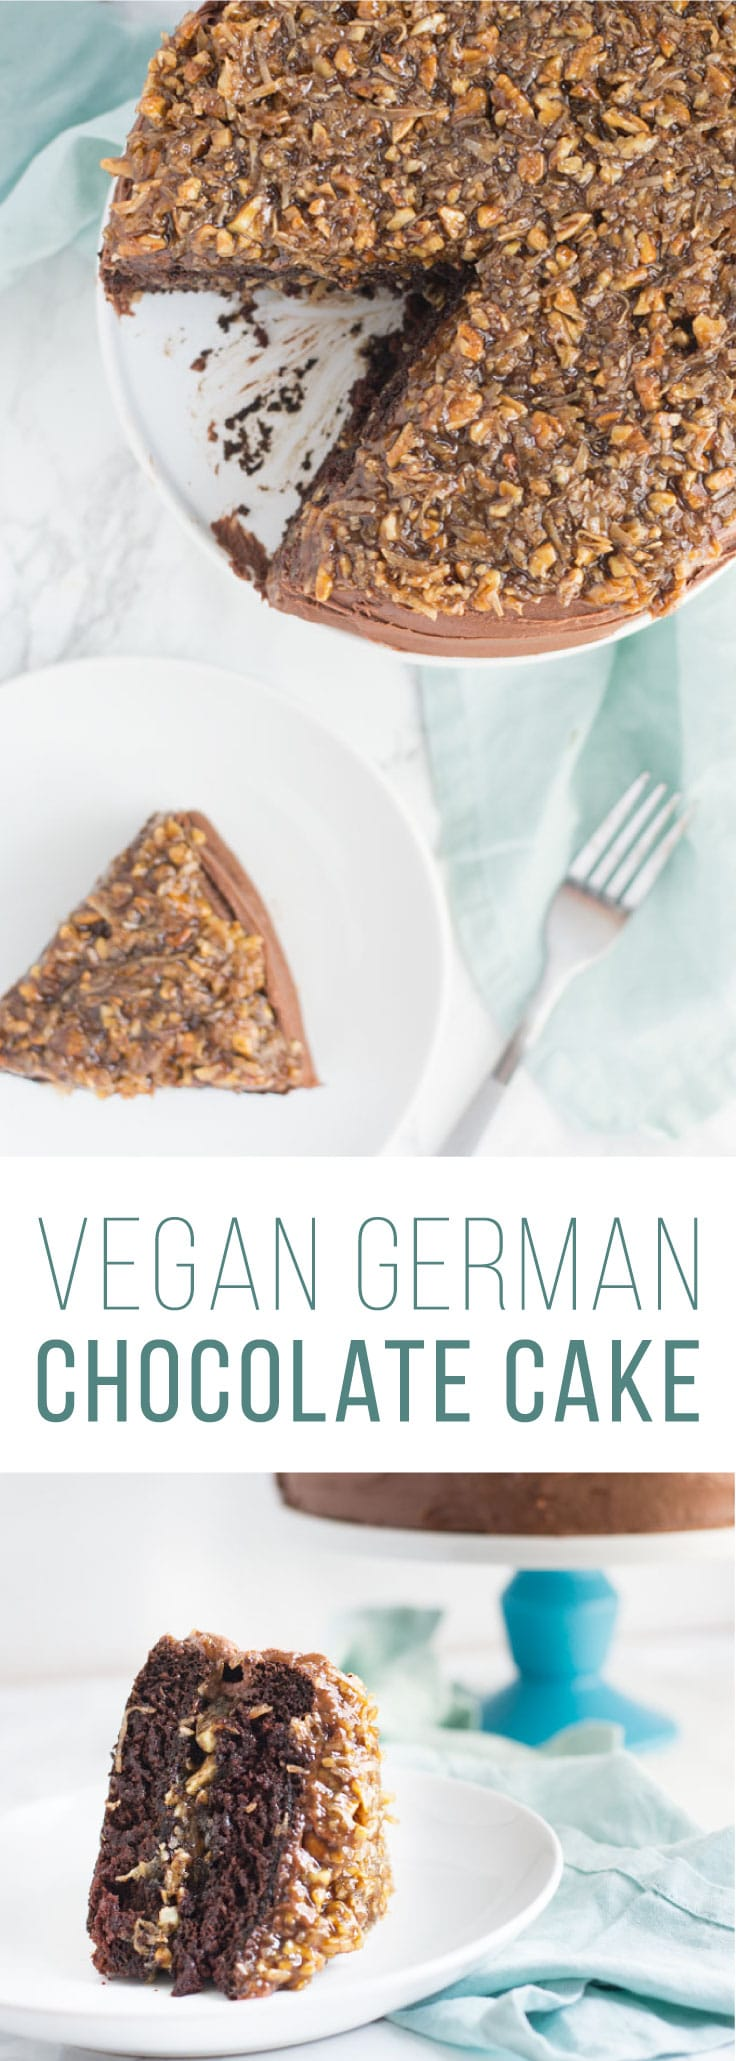 Vegan German Chocolate Cake -- This decadent cake recipe is the BEST for chocolate lovers! Moist chocolate cake layered with coconut pecan frosting and topped with a rich chocolate buttercream. #vegan #baking #chocolatecake #chocolate #coconut #eggfree #dairyfree   mindfulavocado